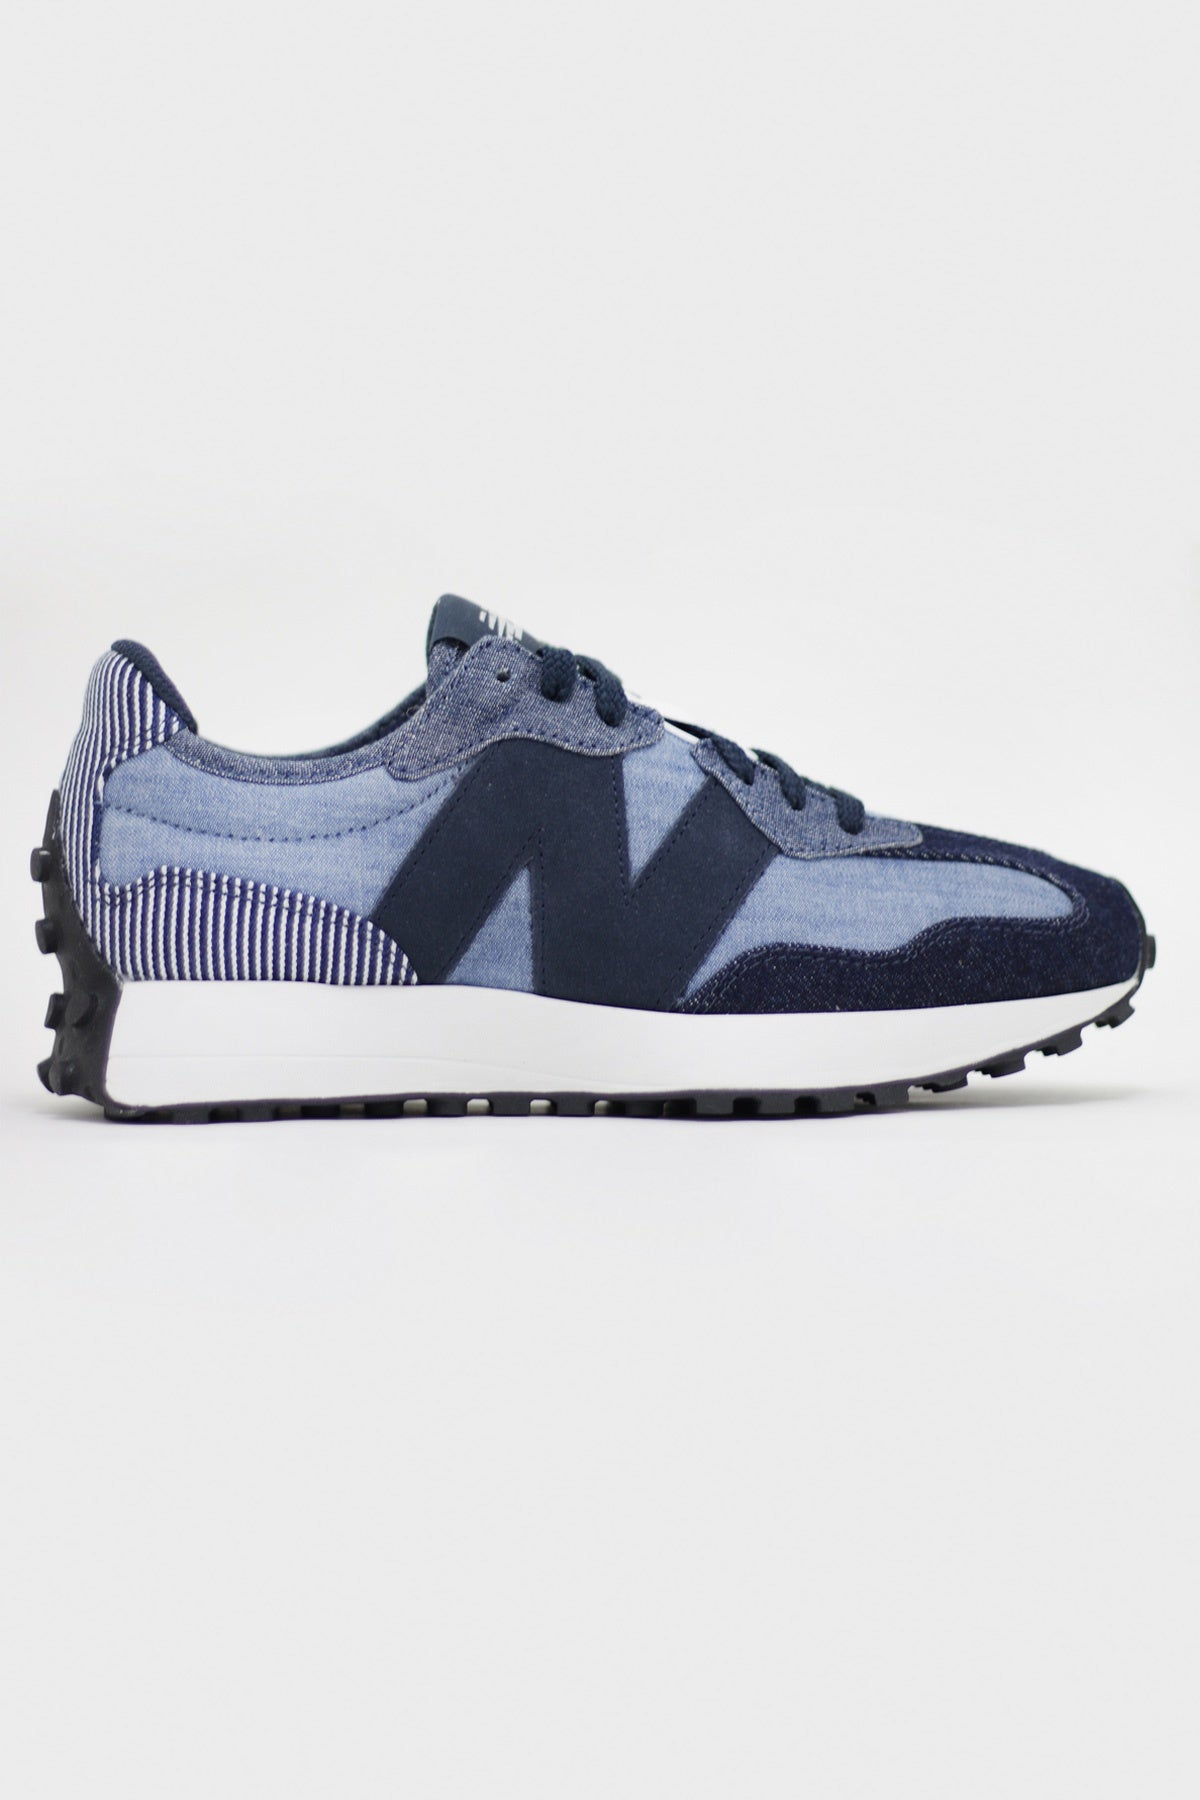 New Balance - 327 - Eclipse/Team Grey Away - Canoe Club